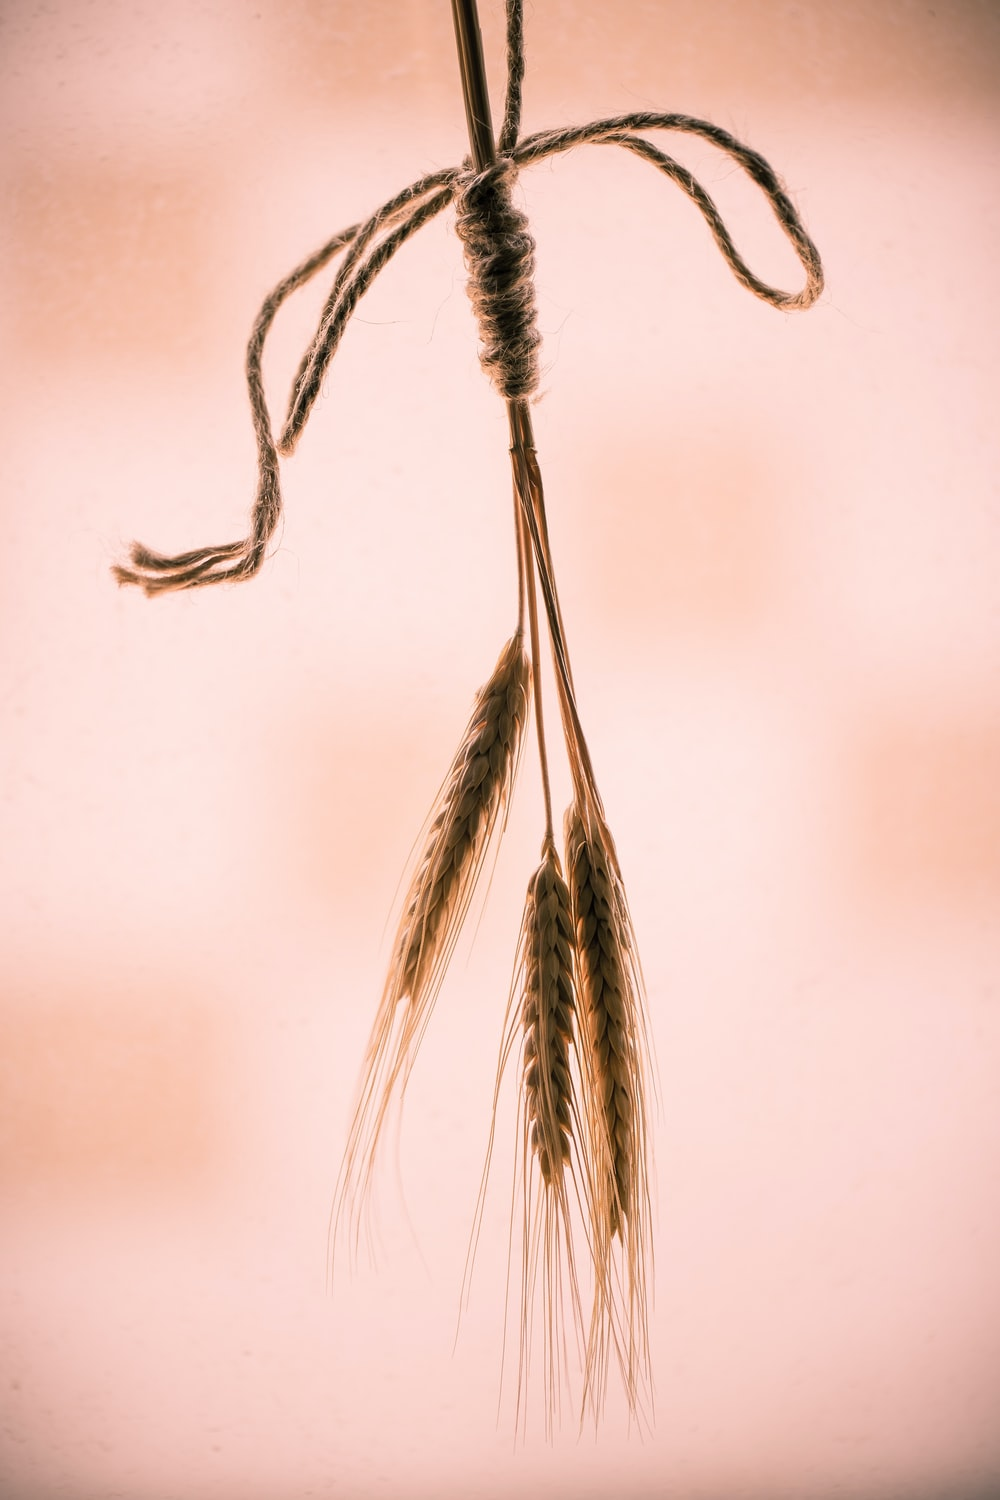 brown and white feather in close up photography